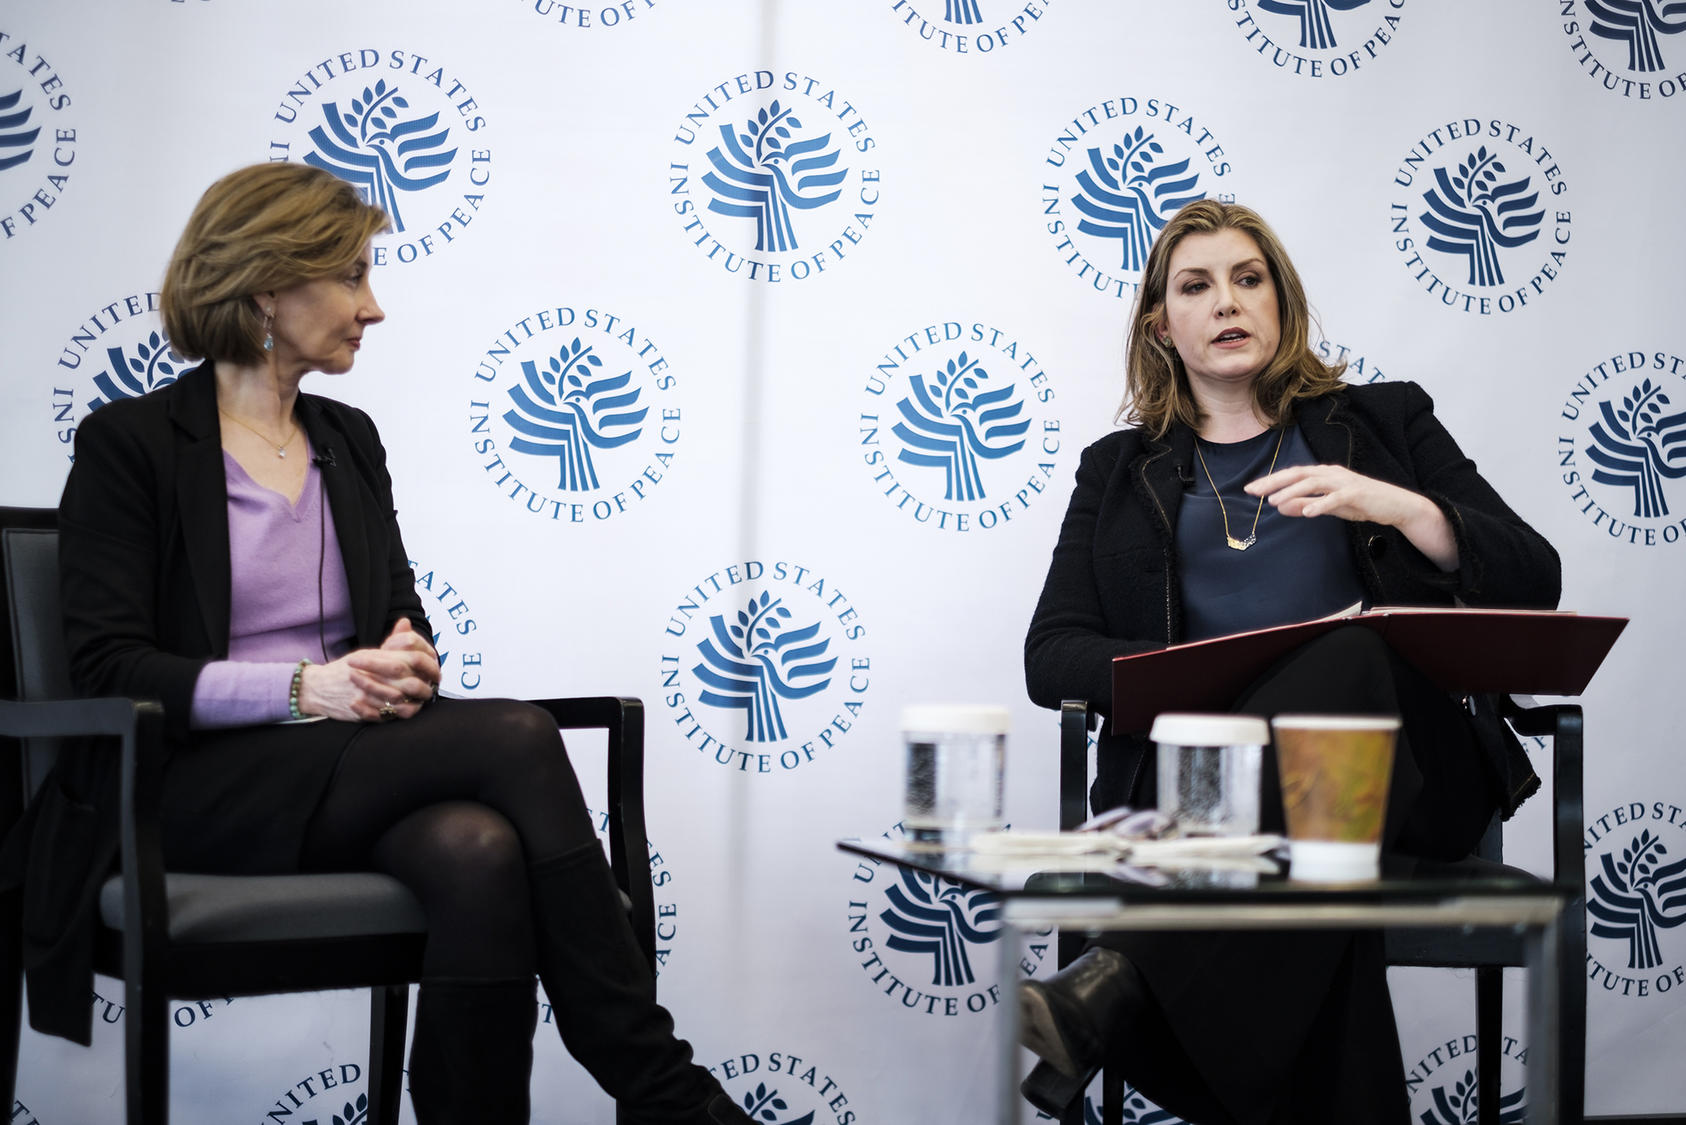 Penny Mordaunt (right), U.K. secretary of state for international development and minister for women and equalities, talks with Nancy Lindborg (left), president of the U.S. Institute of Peace.